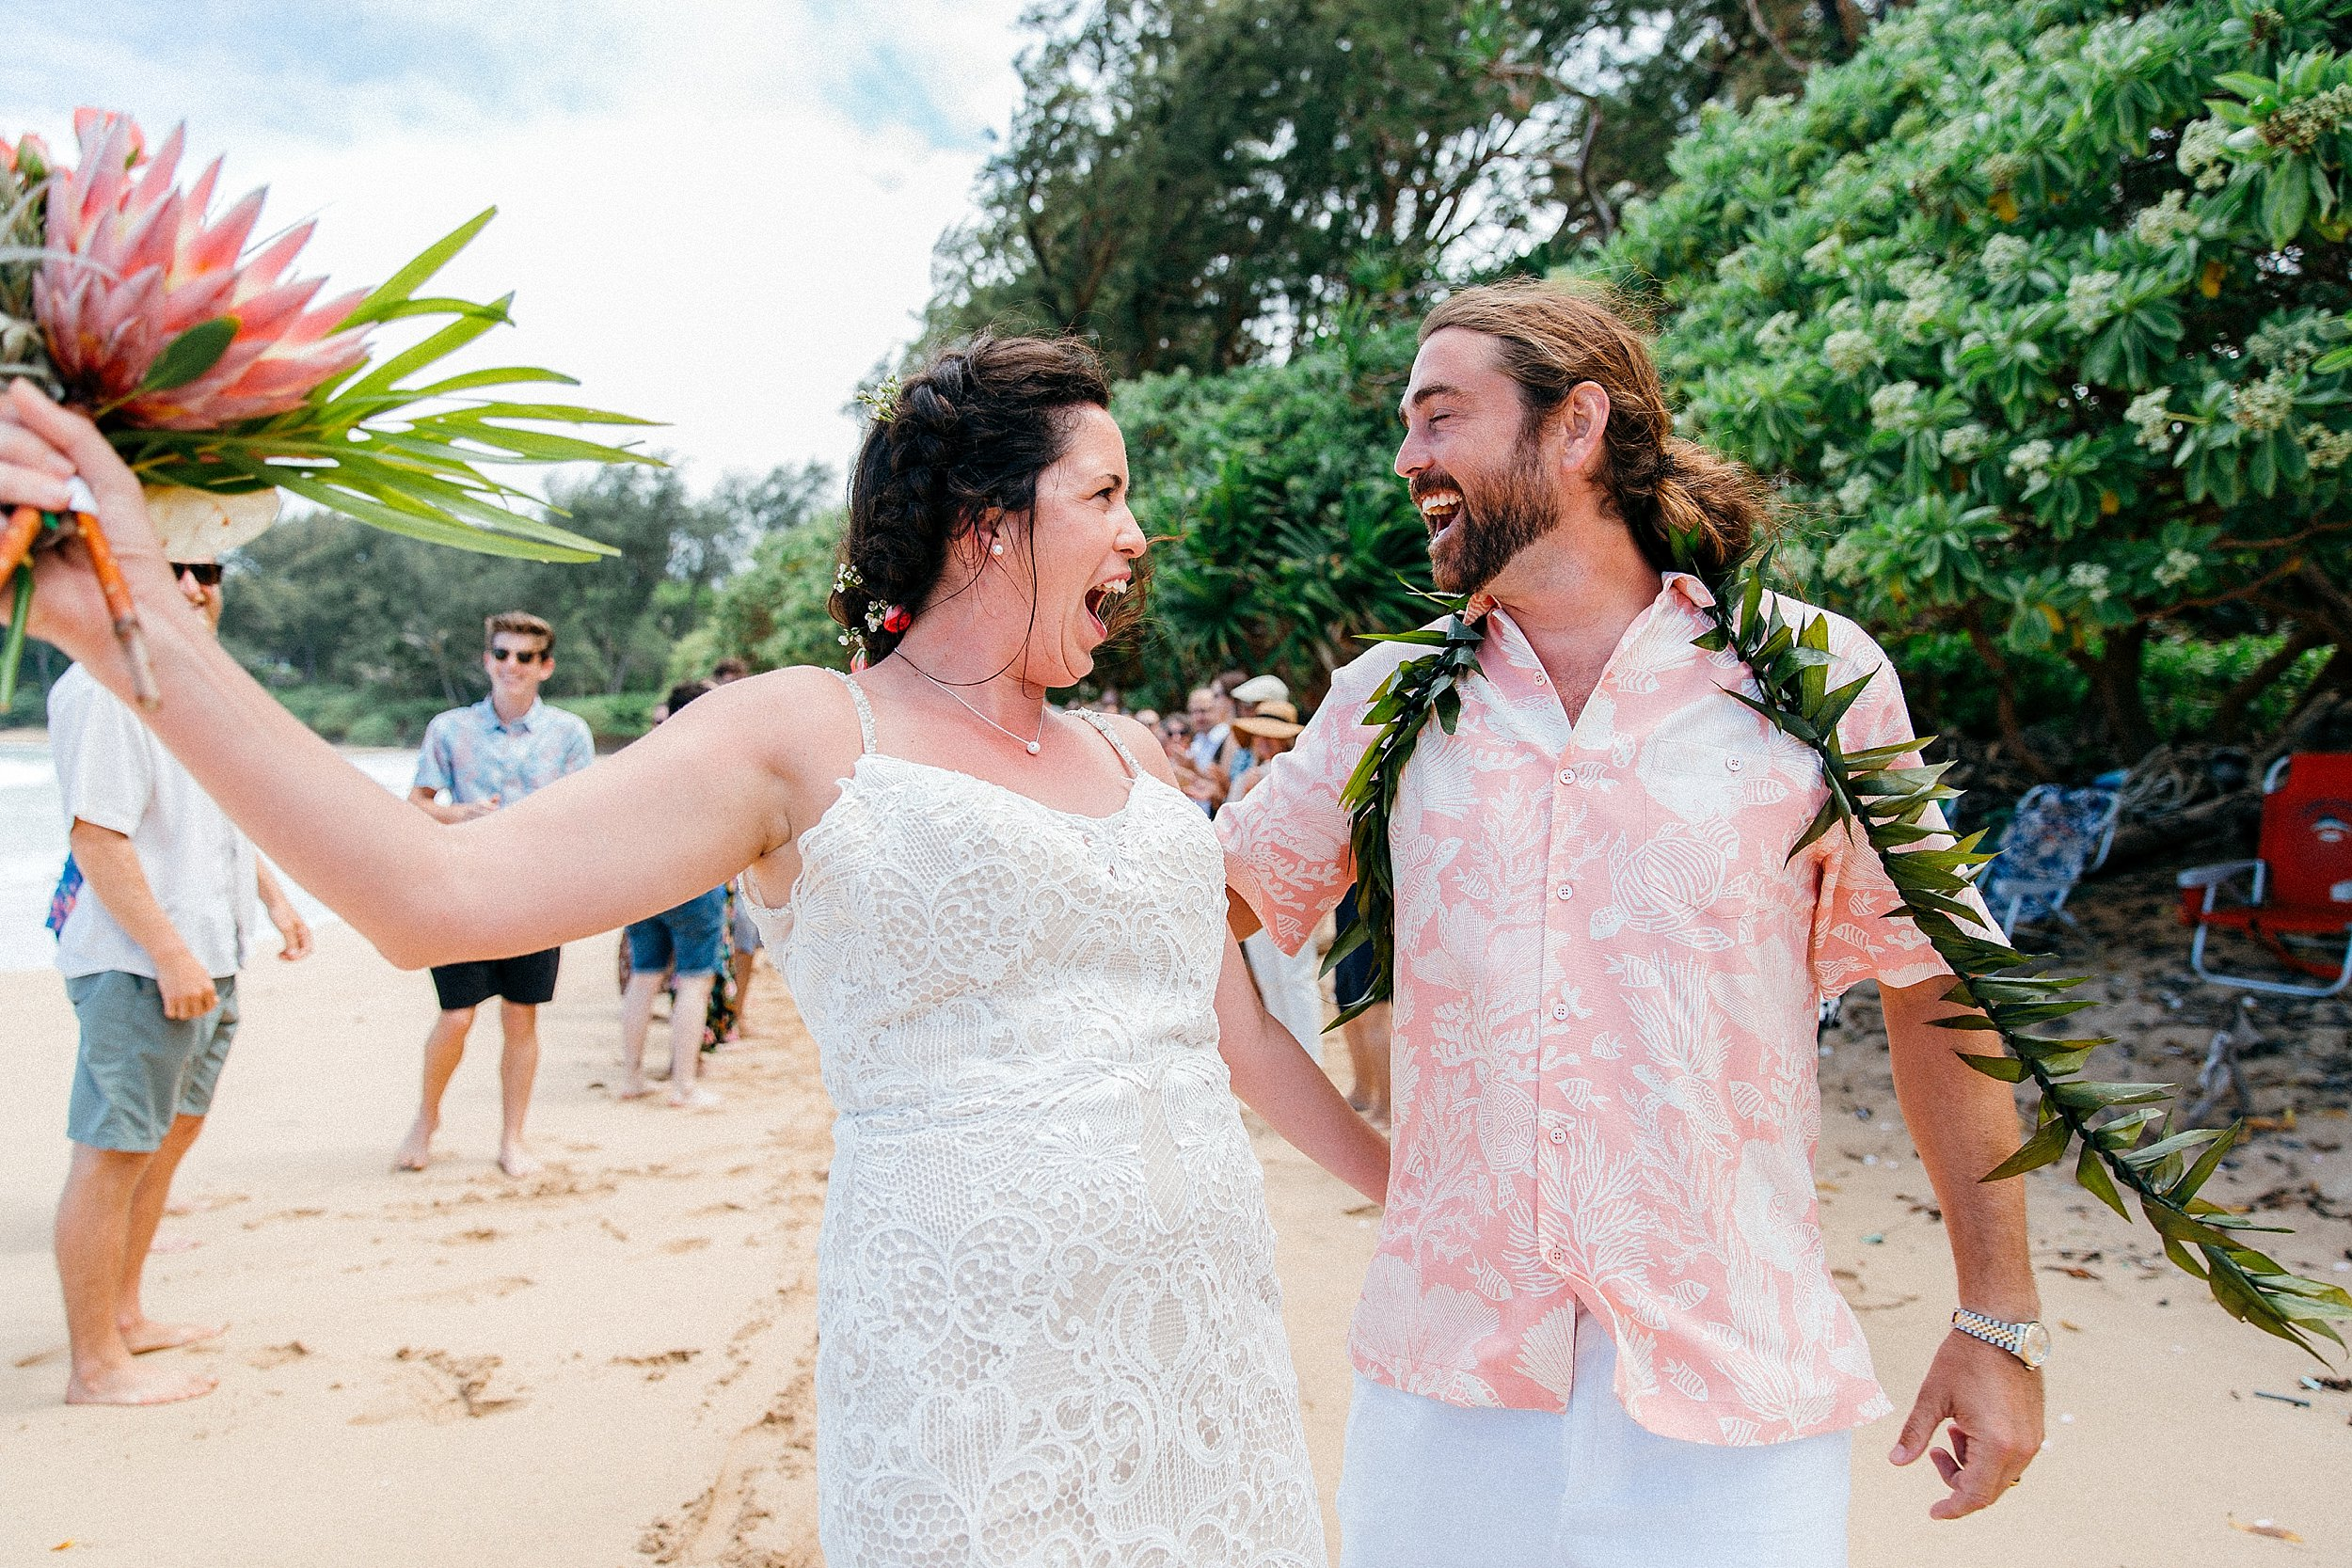 Andy & Allexa celebrate with friends and family on Kokololio Beach after getting married at Mahakea Estate in Hauula, Hawaii.